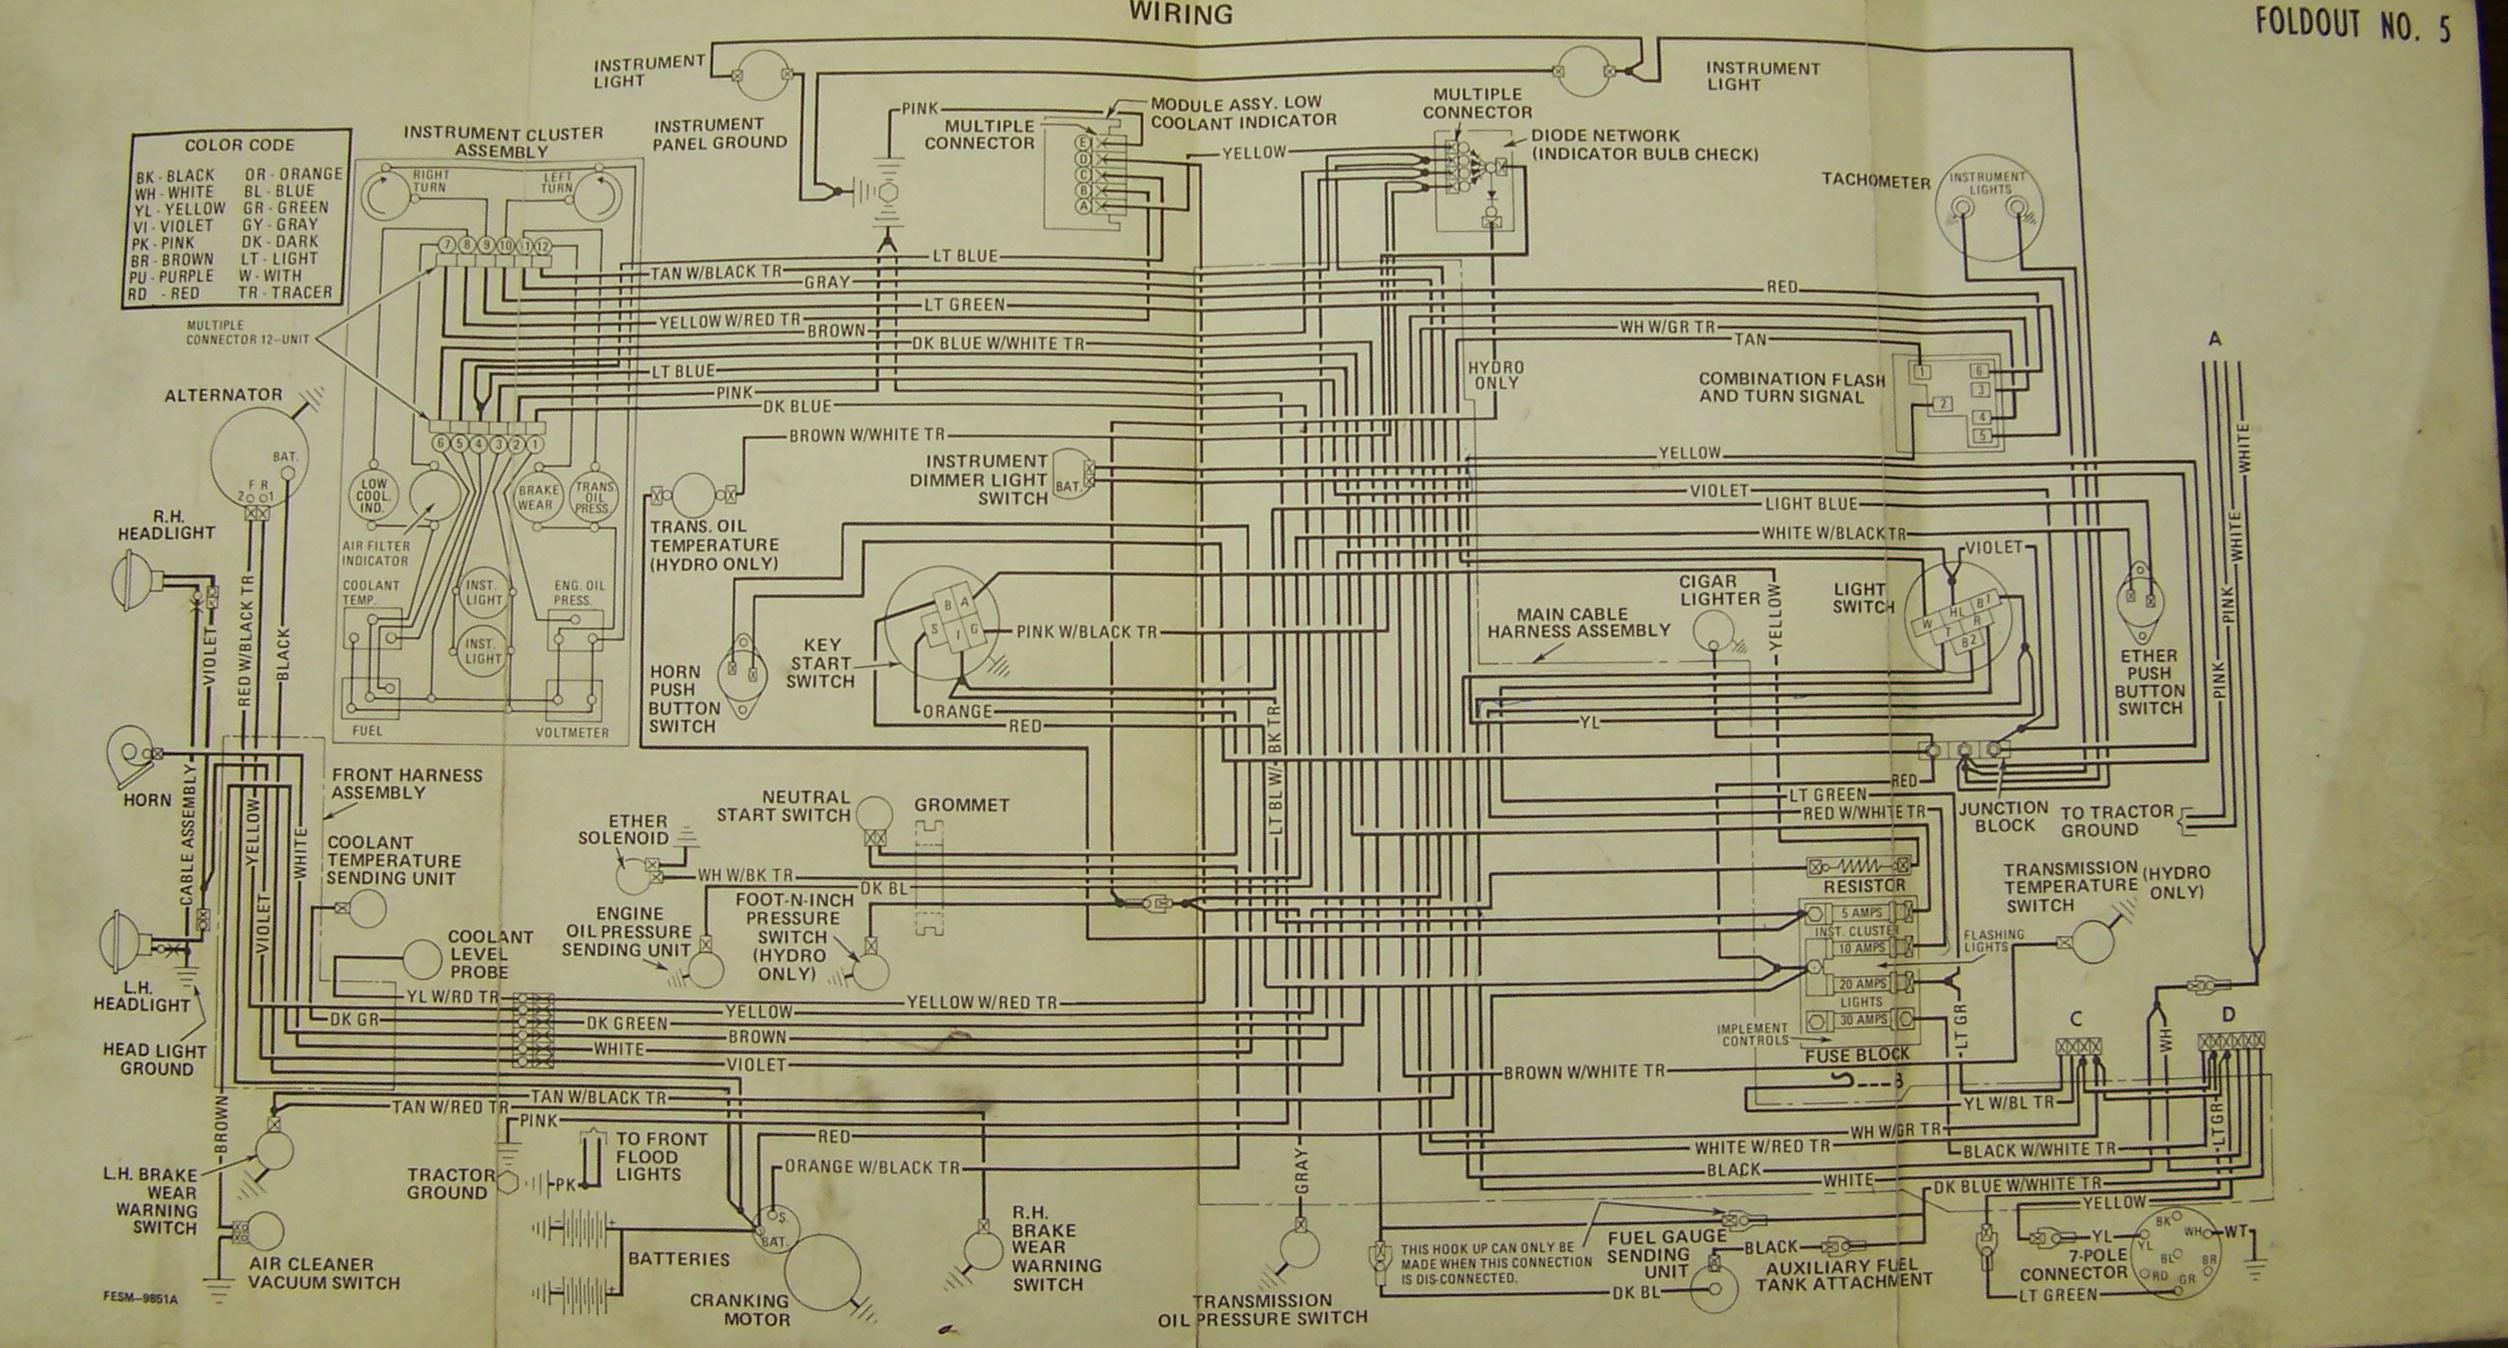 Farmall Wiring Diagram Schematics Diagrams Cockshutt Carter Gruenewald Co Inc Ih Tractor Electrical Rh Cngco Com H